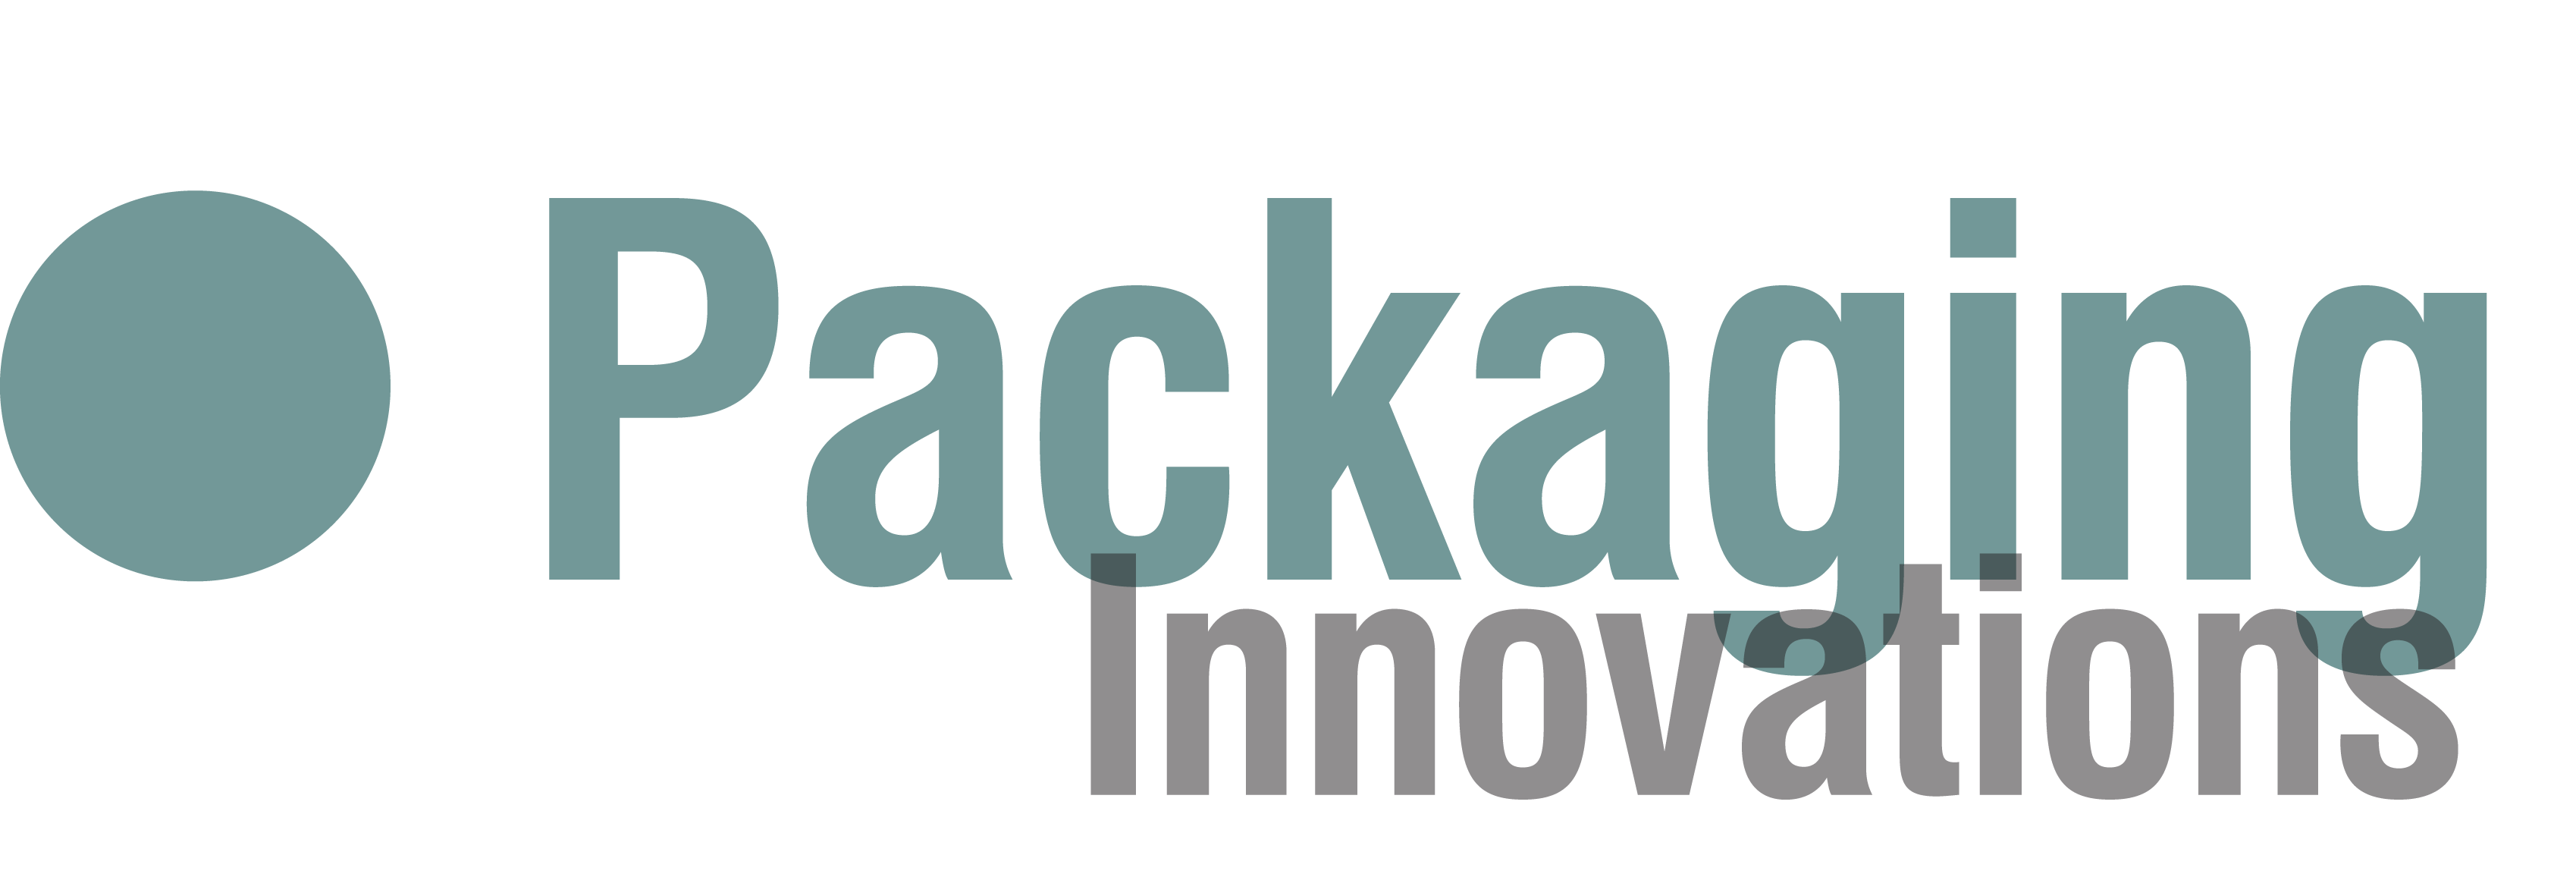 Packagnig Innovations